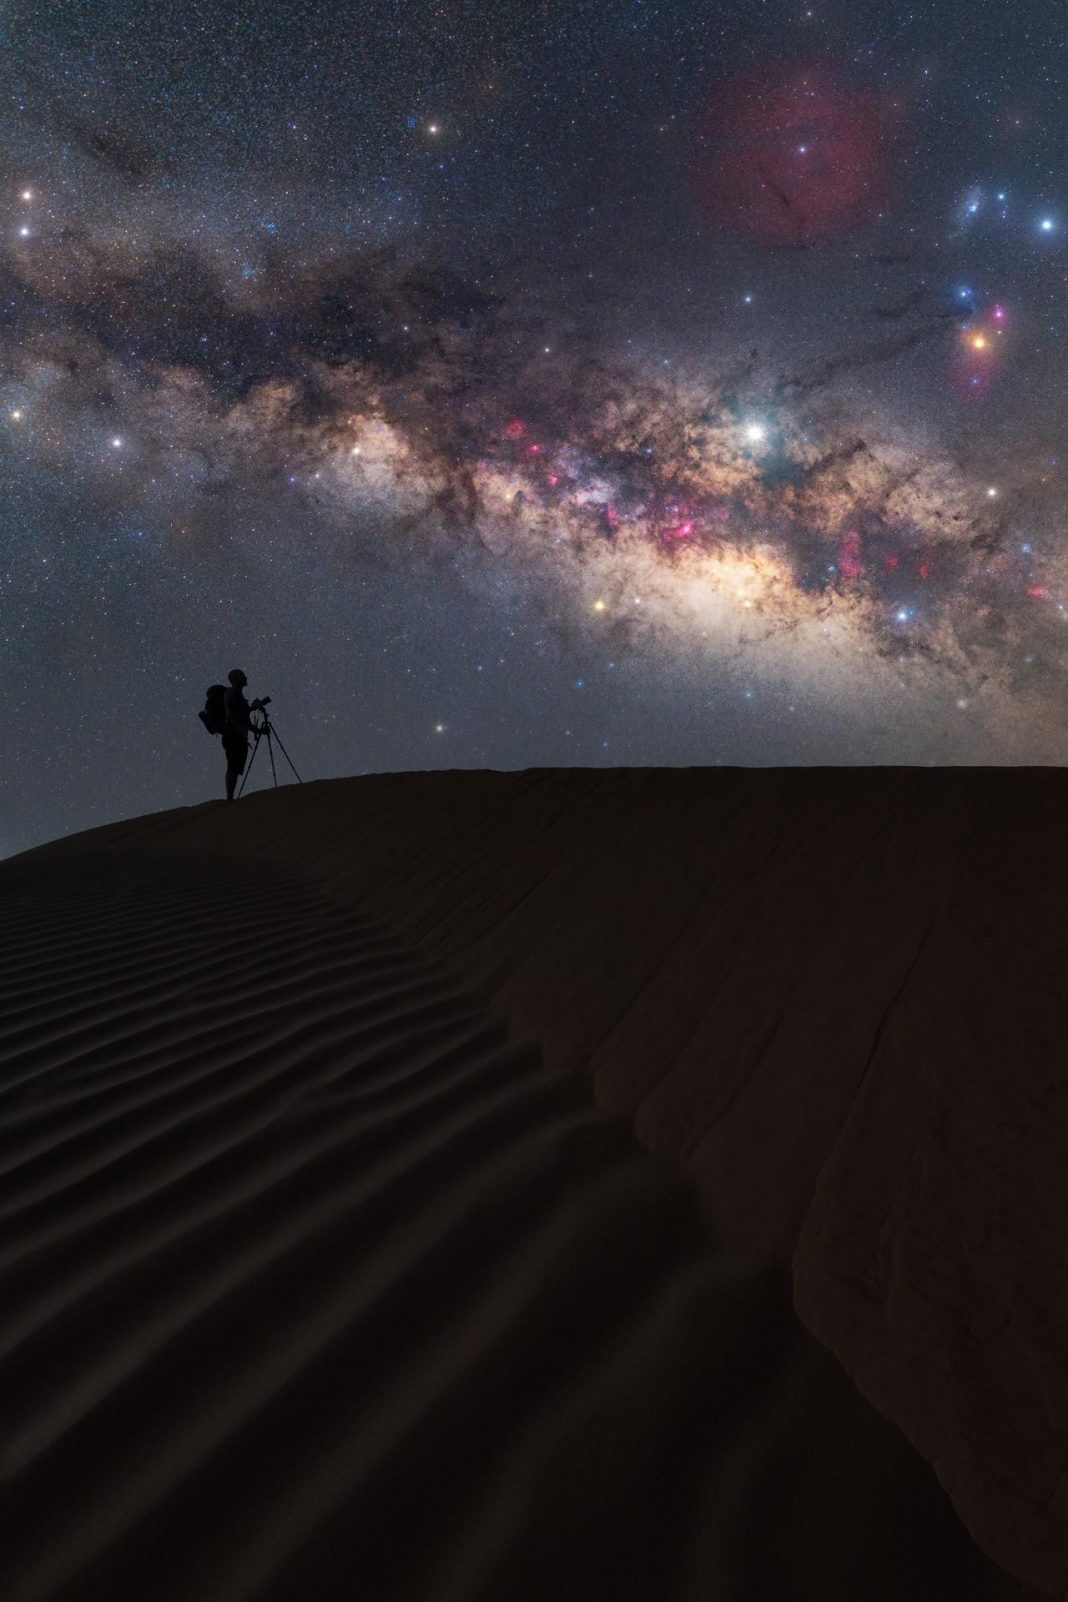 Milky Way Photographer Of The Year: 25 Mesmerizing Images Of Our Night Sky